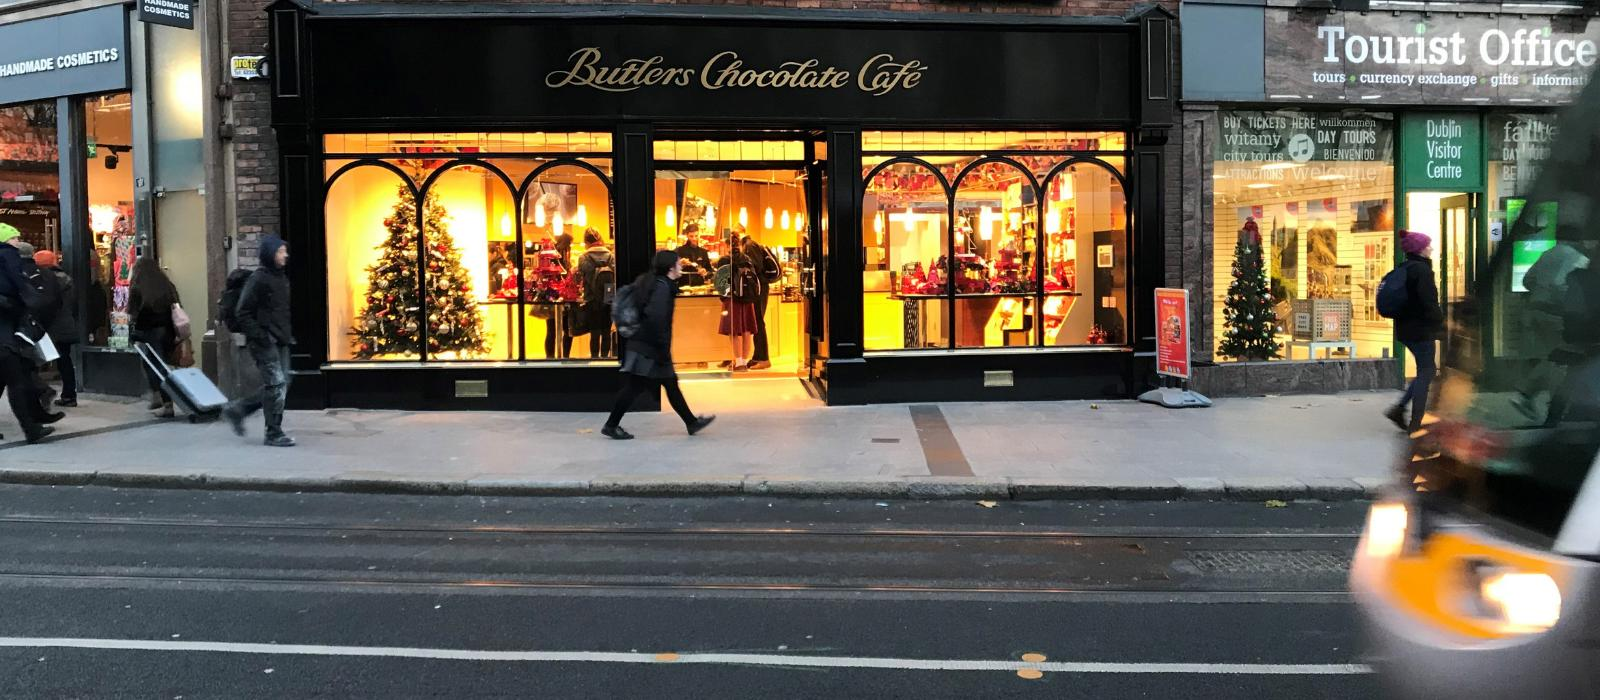 careers in Butlers Chocolates, Butlers Chocolate Café